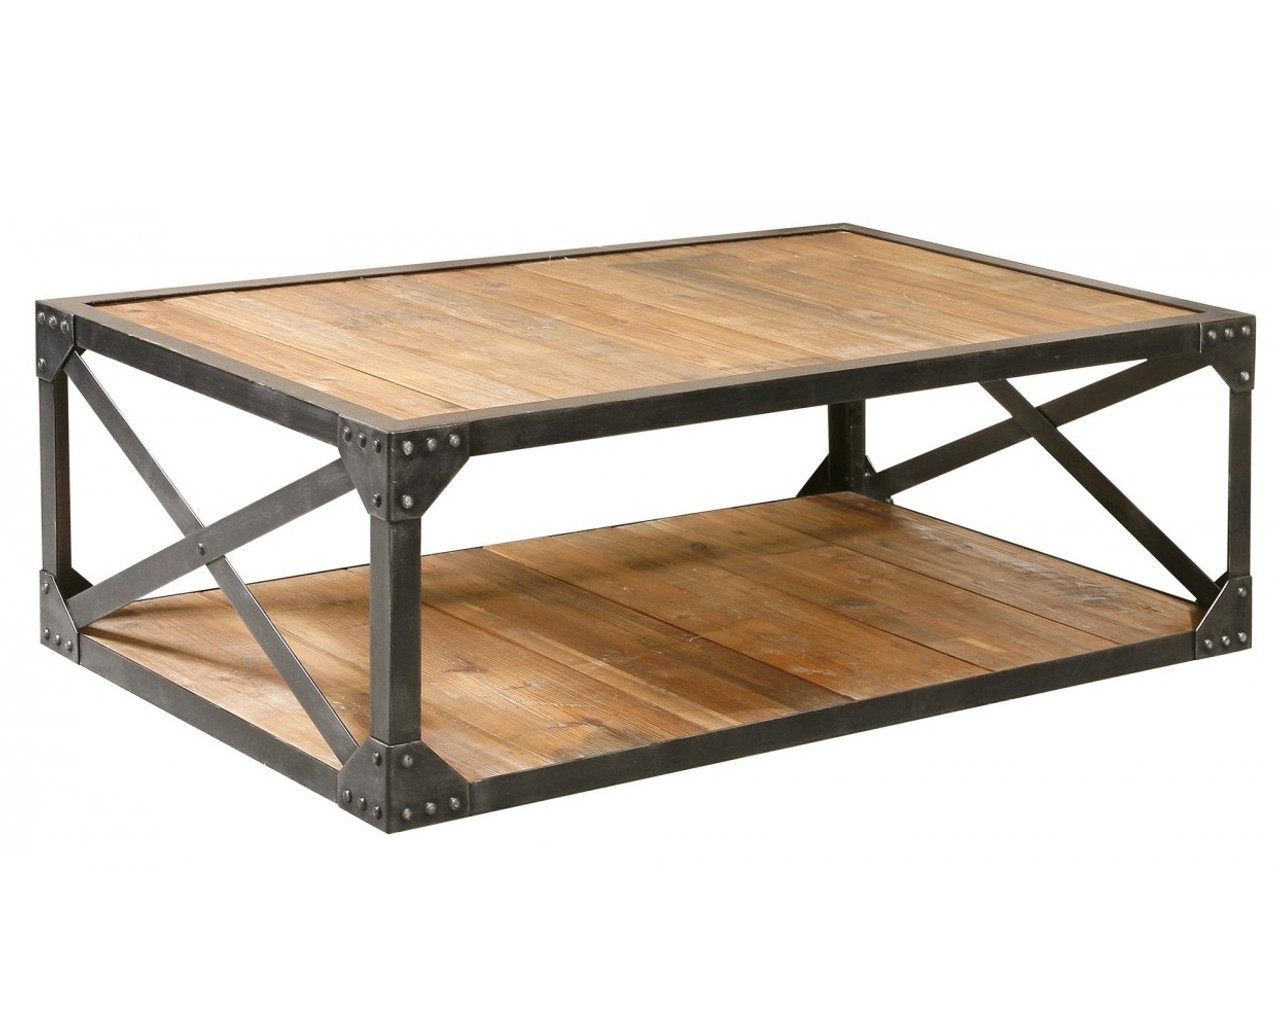 Industrial metal and wood coffee 51 table rectangular cocktail industrial metal and wood coffee table geotapseo Choice Image